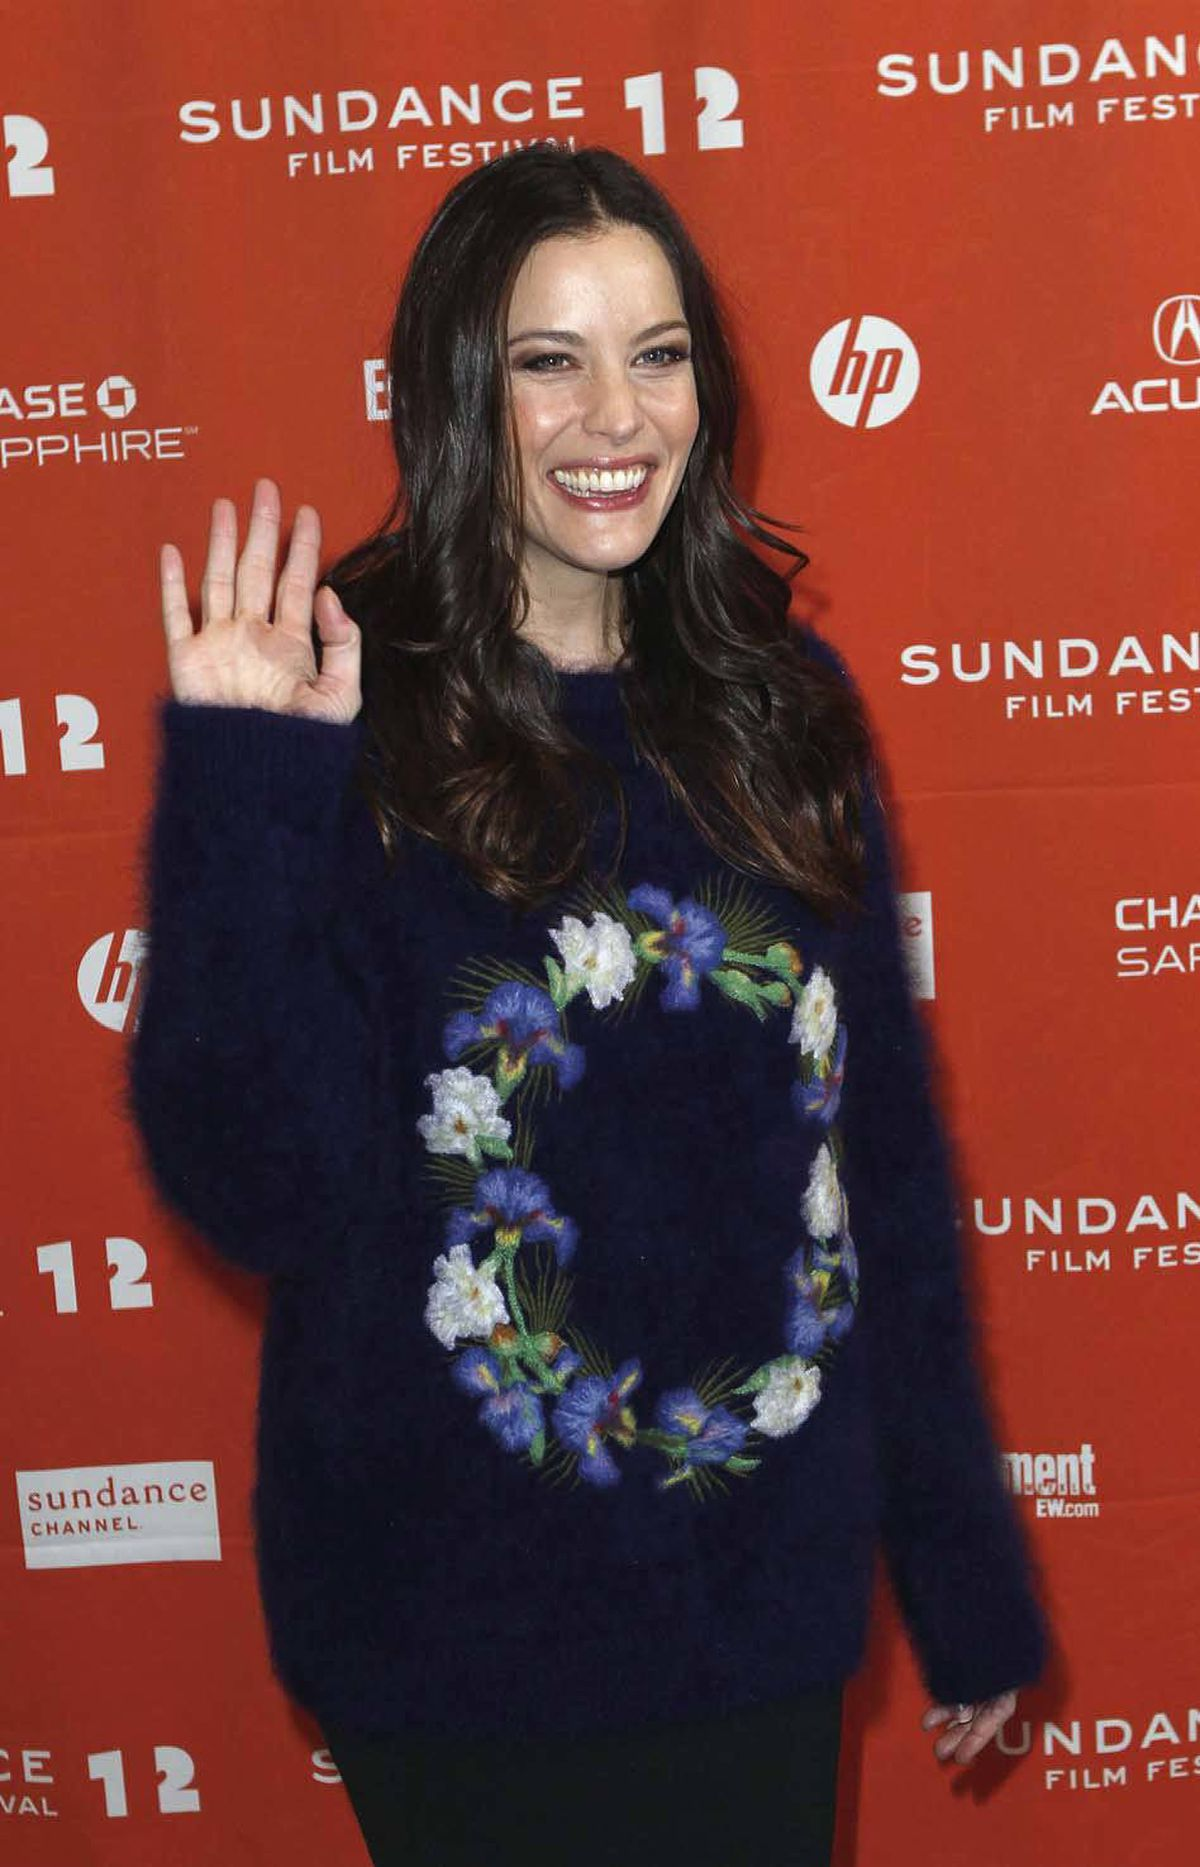 Remember this, people, as the day this writer could find no words to describe the sweater Liv Tyler wore to the Sundance Film Festival on Friday.